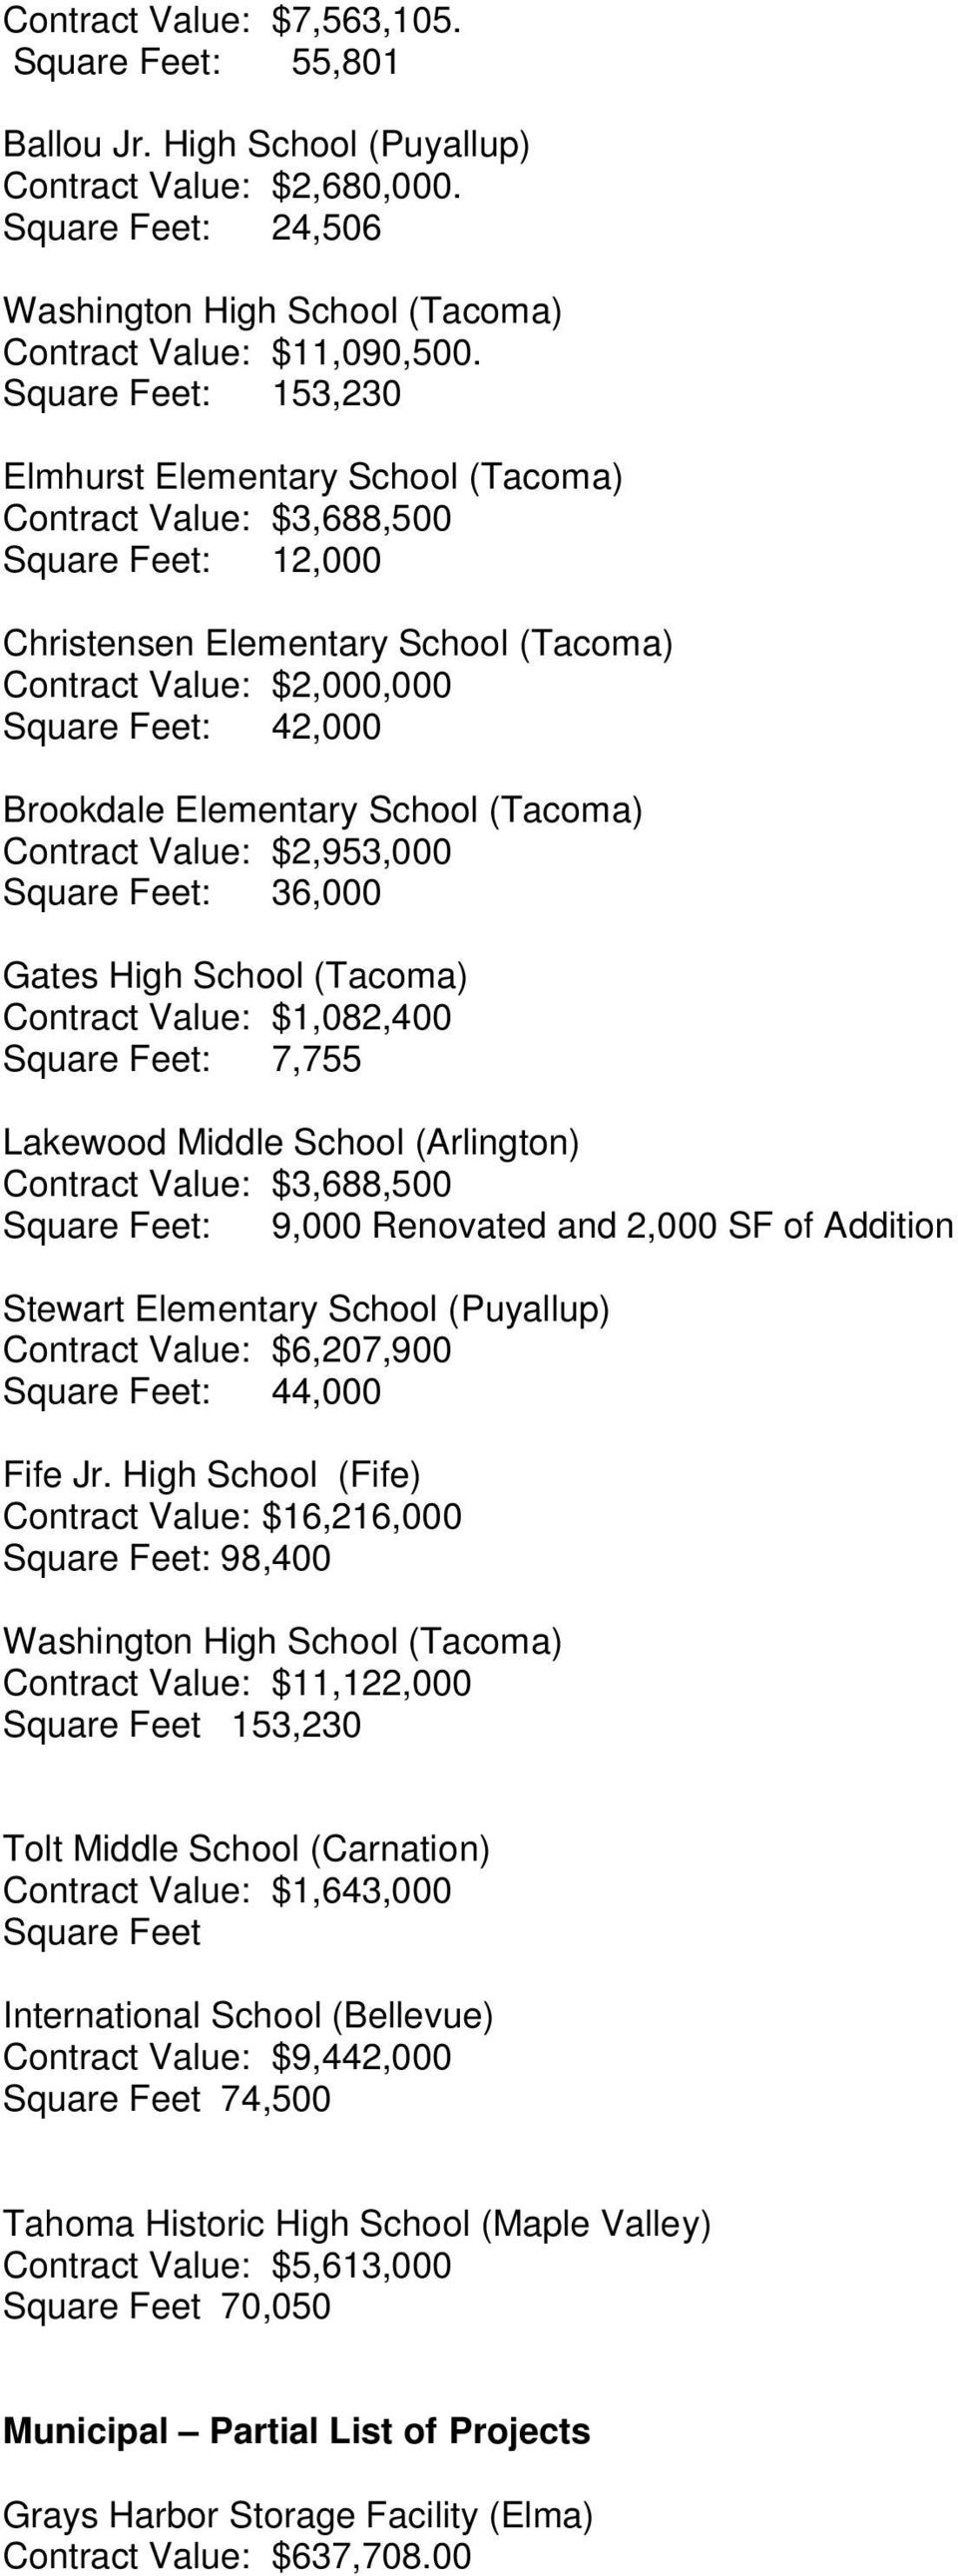 Elementary School (Tacoma) Contract Value: $2,953,000 Square Feet: 36,000 Gates High School (Tacoma) Contract Value: $1,082,400 Square Feet: 7,755 Lakewood Middle School (Arlington) Contract Value: